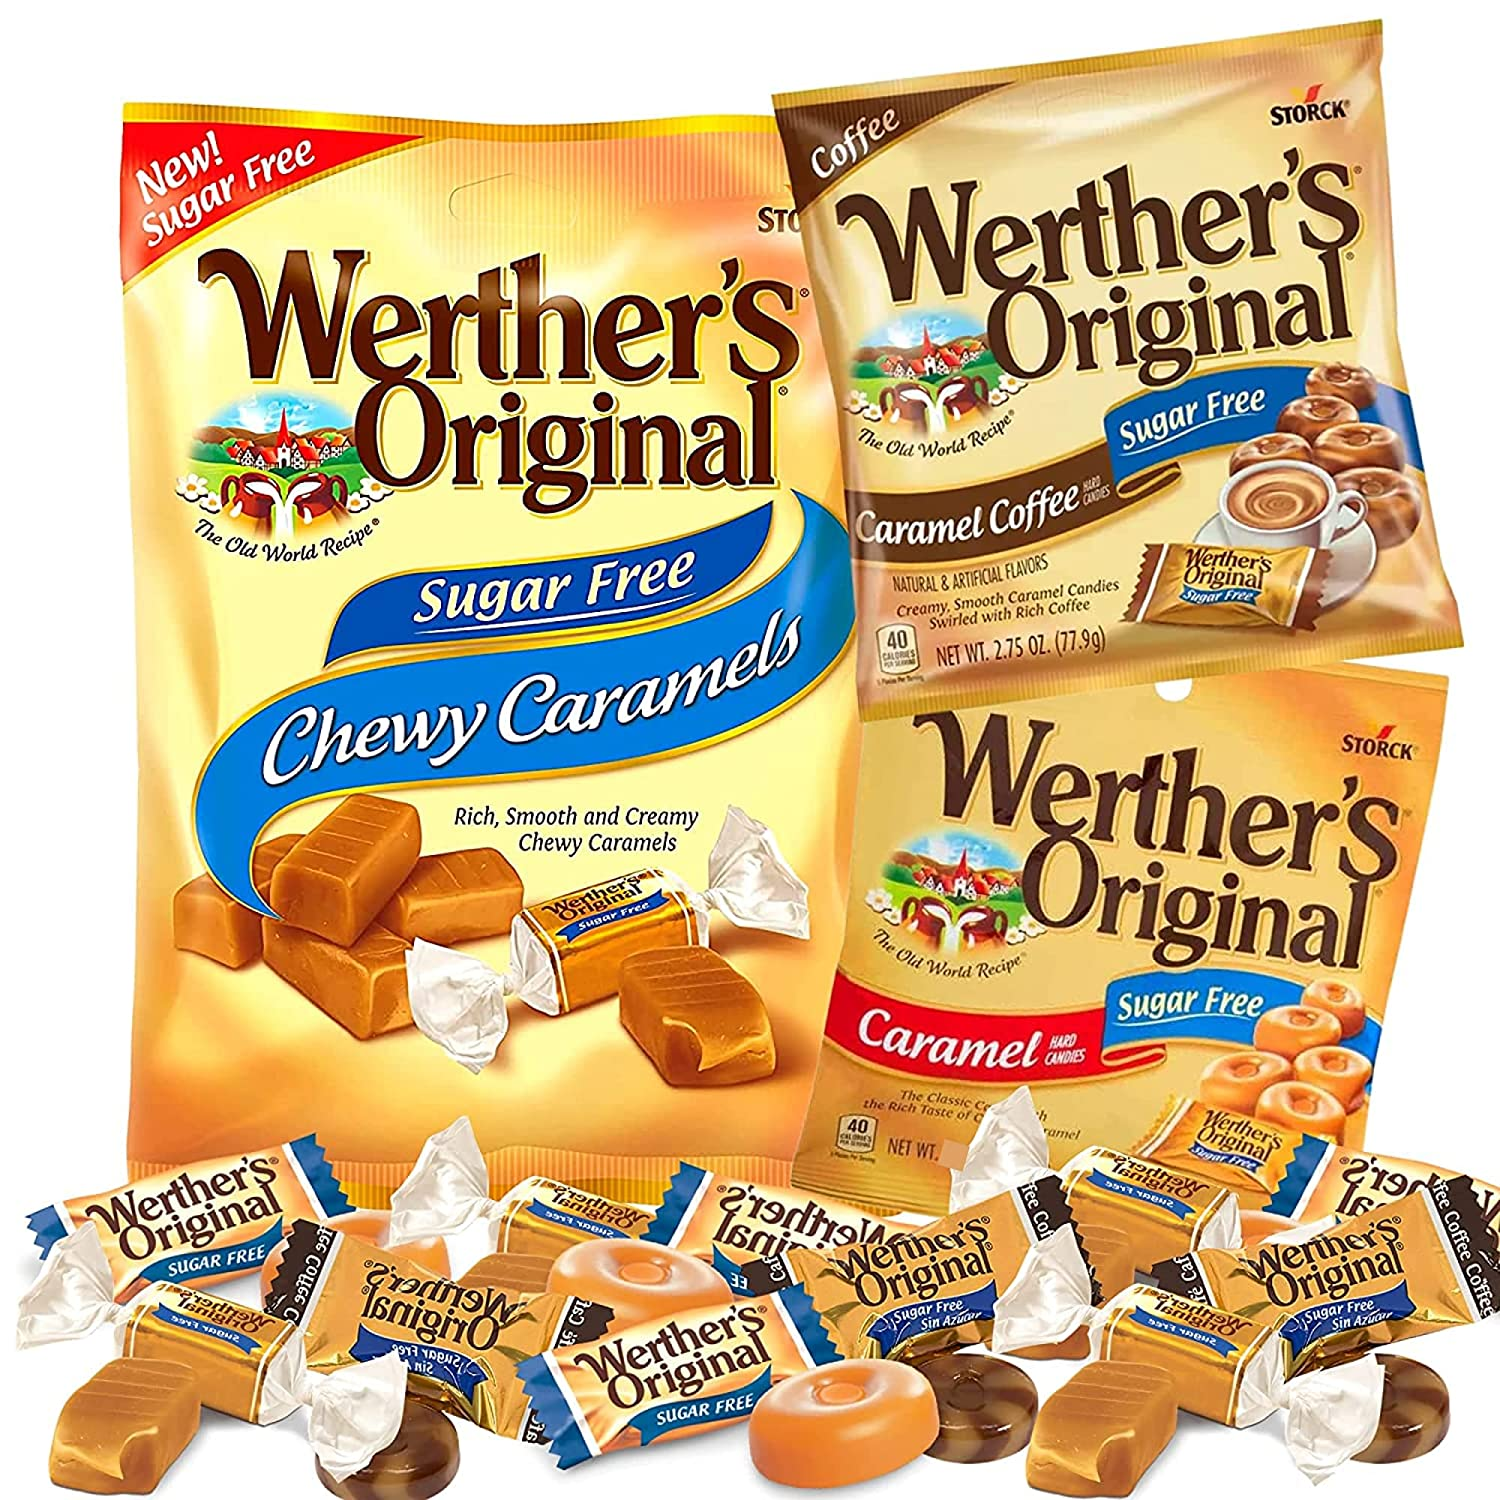 Werthers Sugar Free Candy Variety Pack with Classic Caramel Flavored Hard and Chewy Candies Paired with Caramel Coffee, Set of 3, 1.46 Ounces